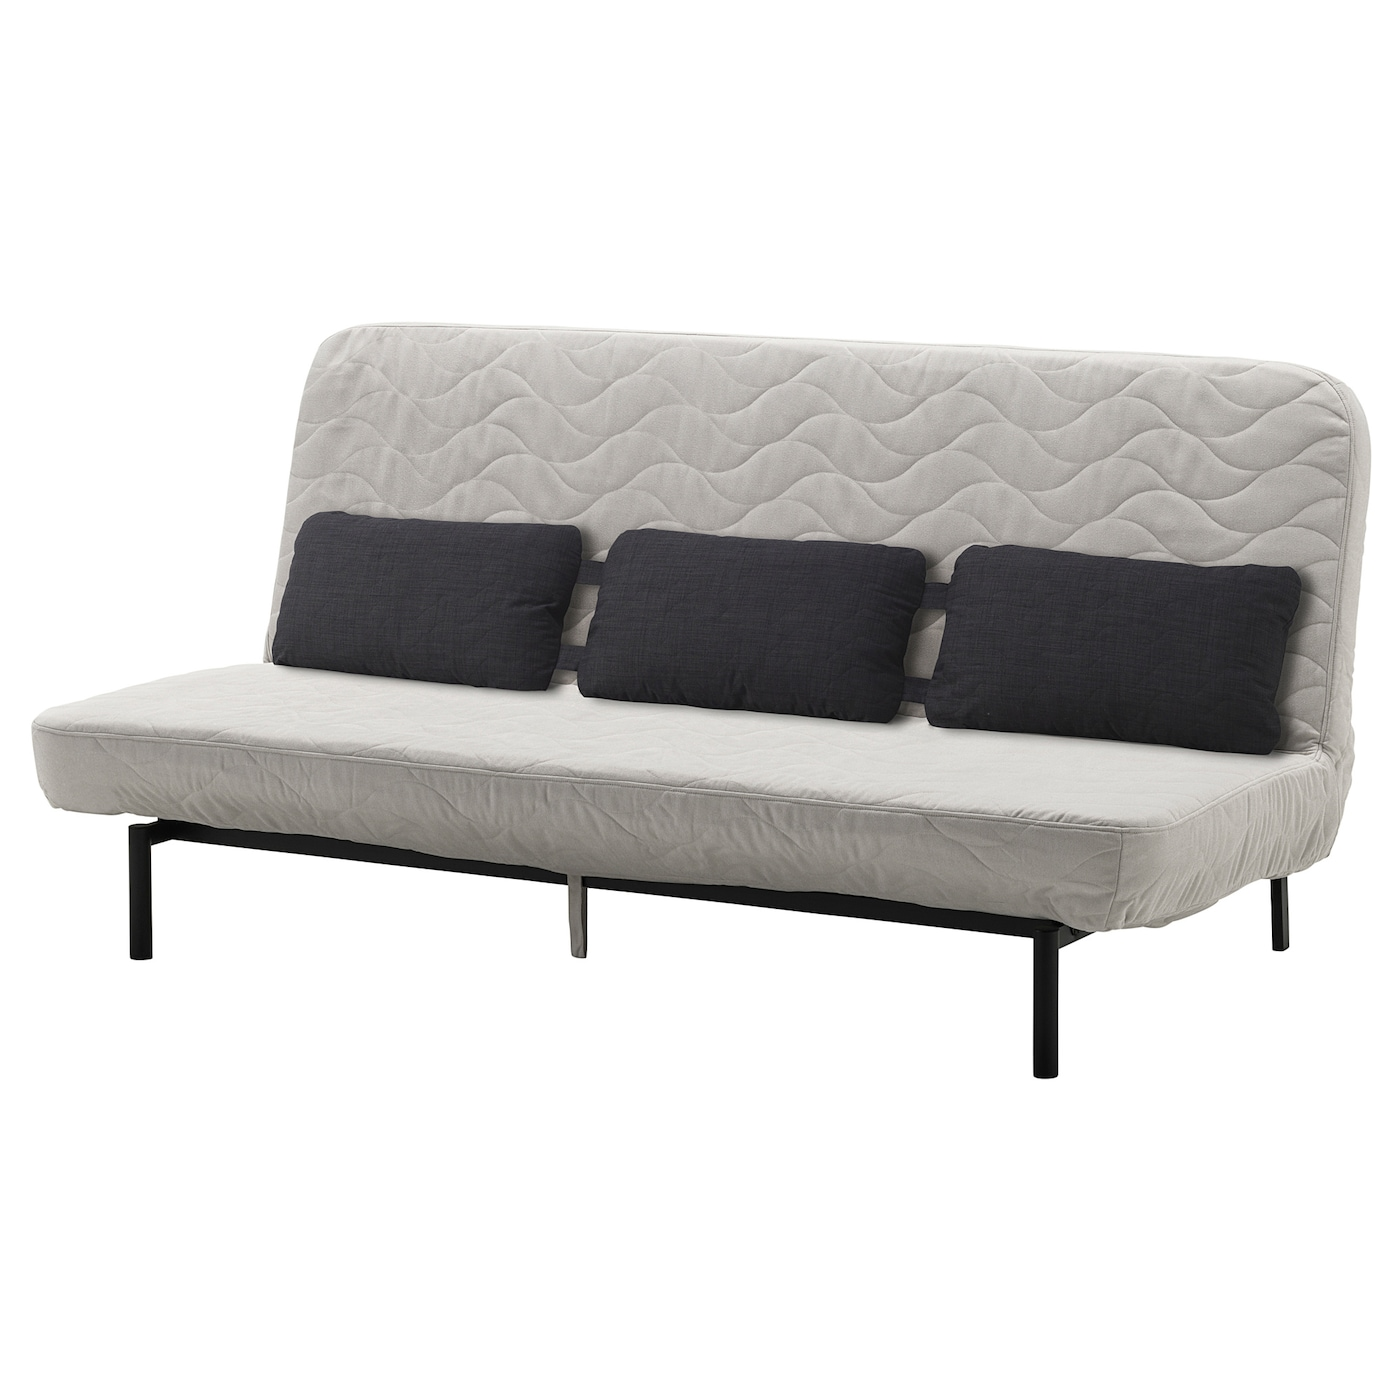 IKEA NYHAMN convertible clic-clac 3 places